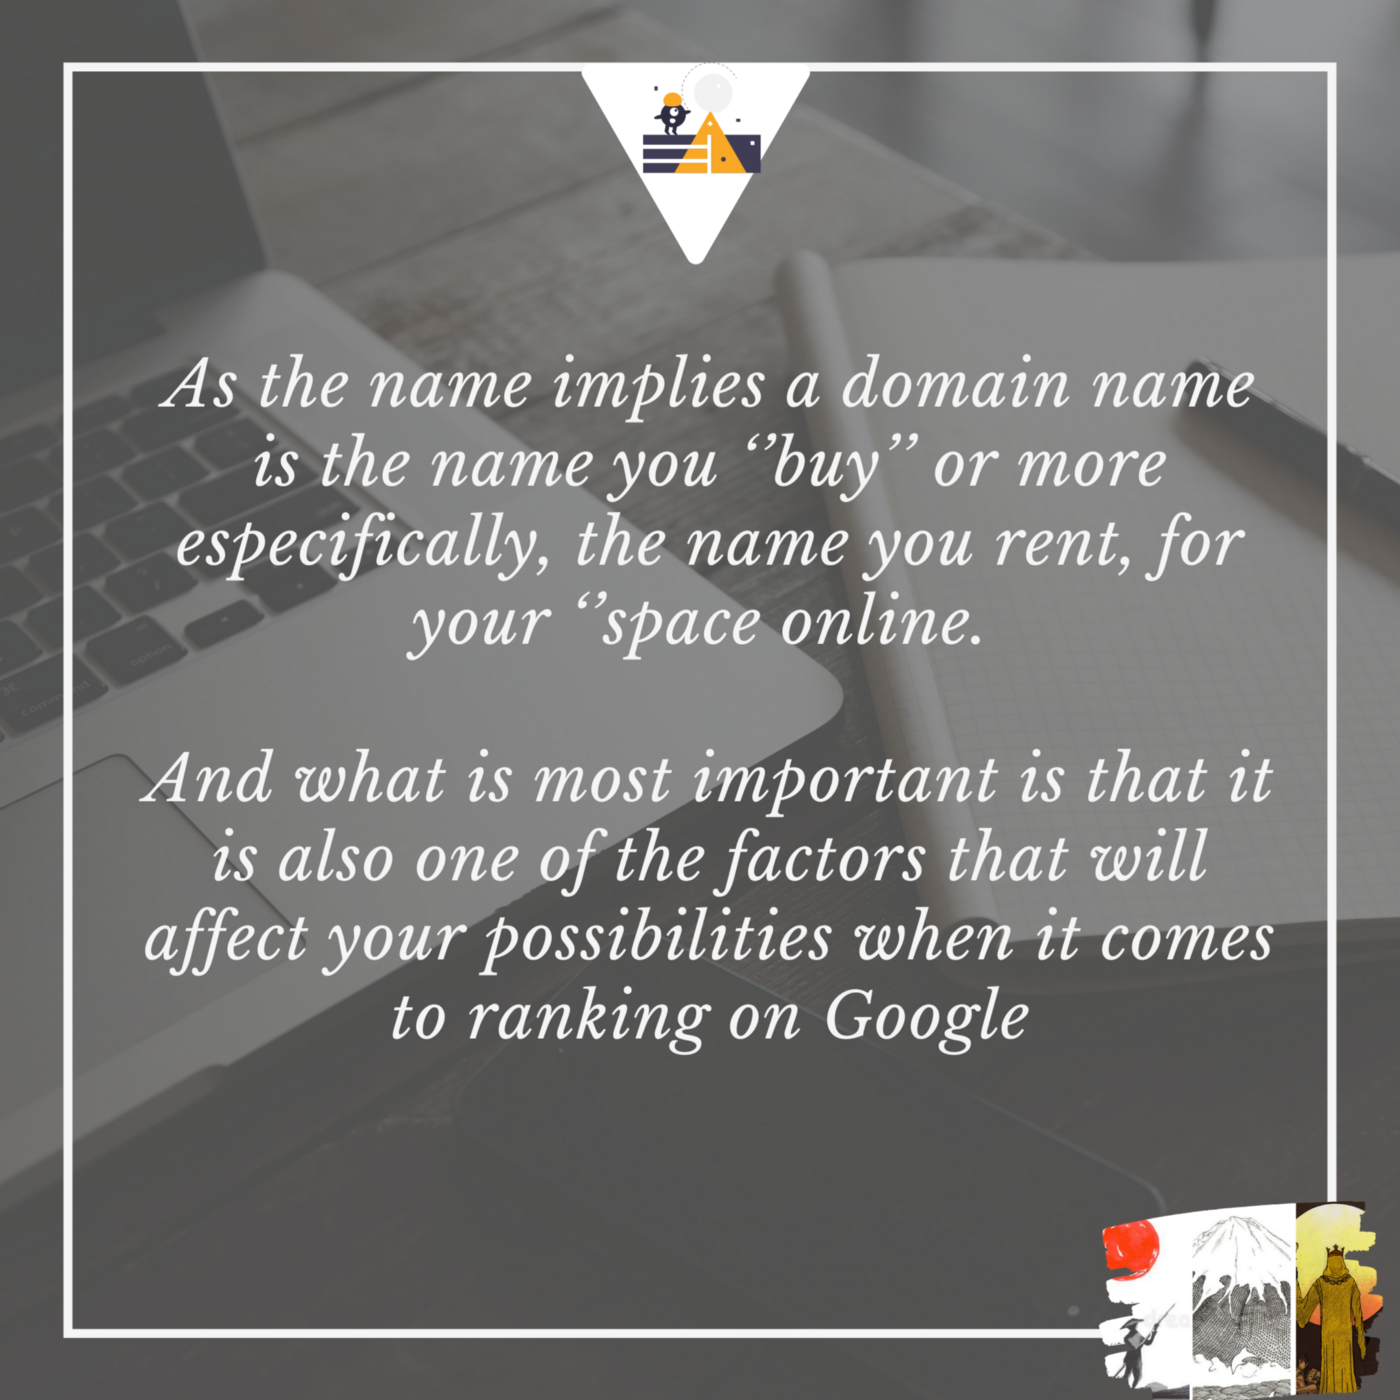 As the name implies a domain name is the name you ''buy'' for your space online. And it can affect your ranking on Google